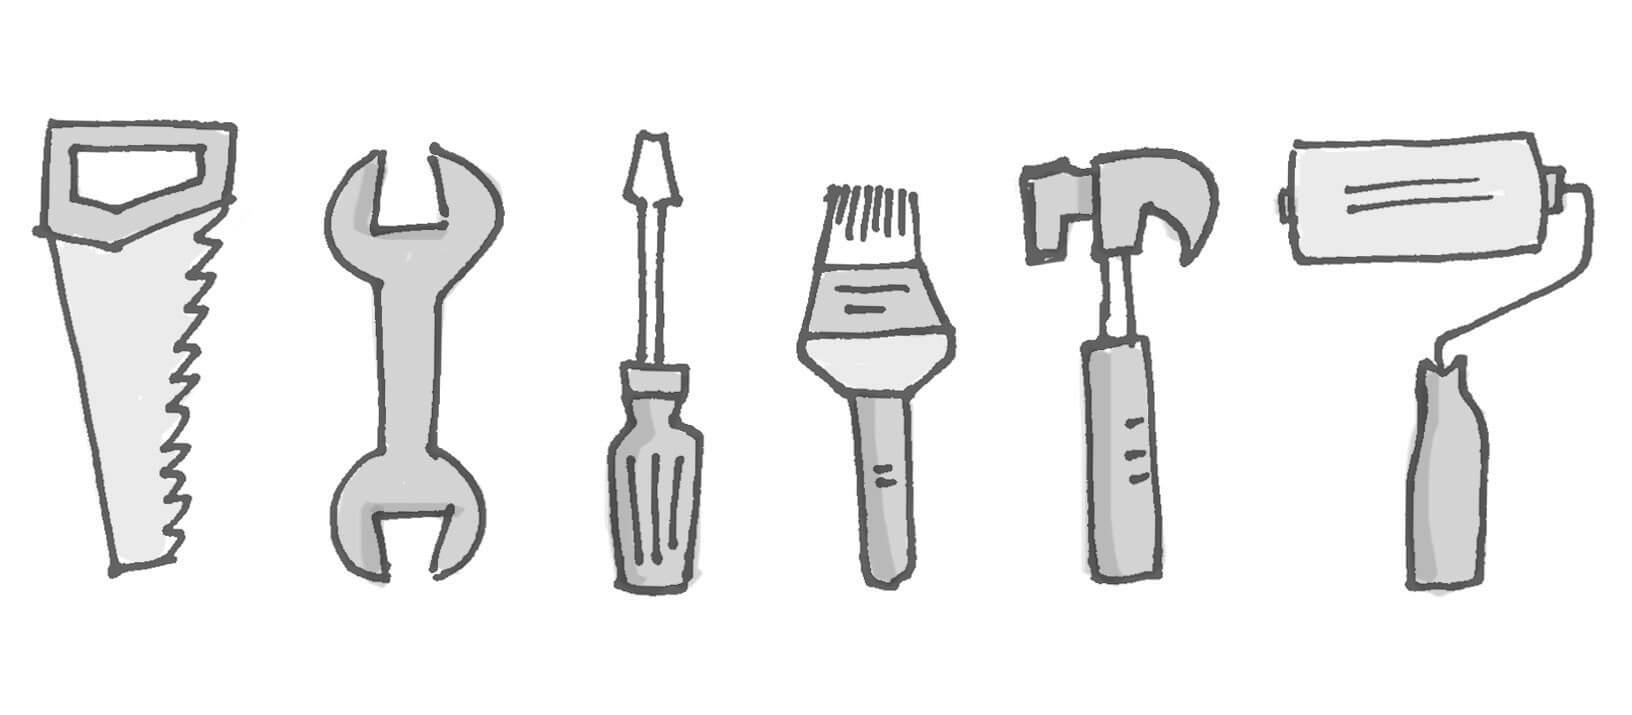 Tools Tools new picture